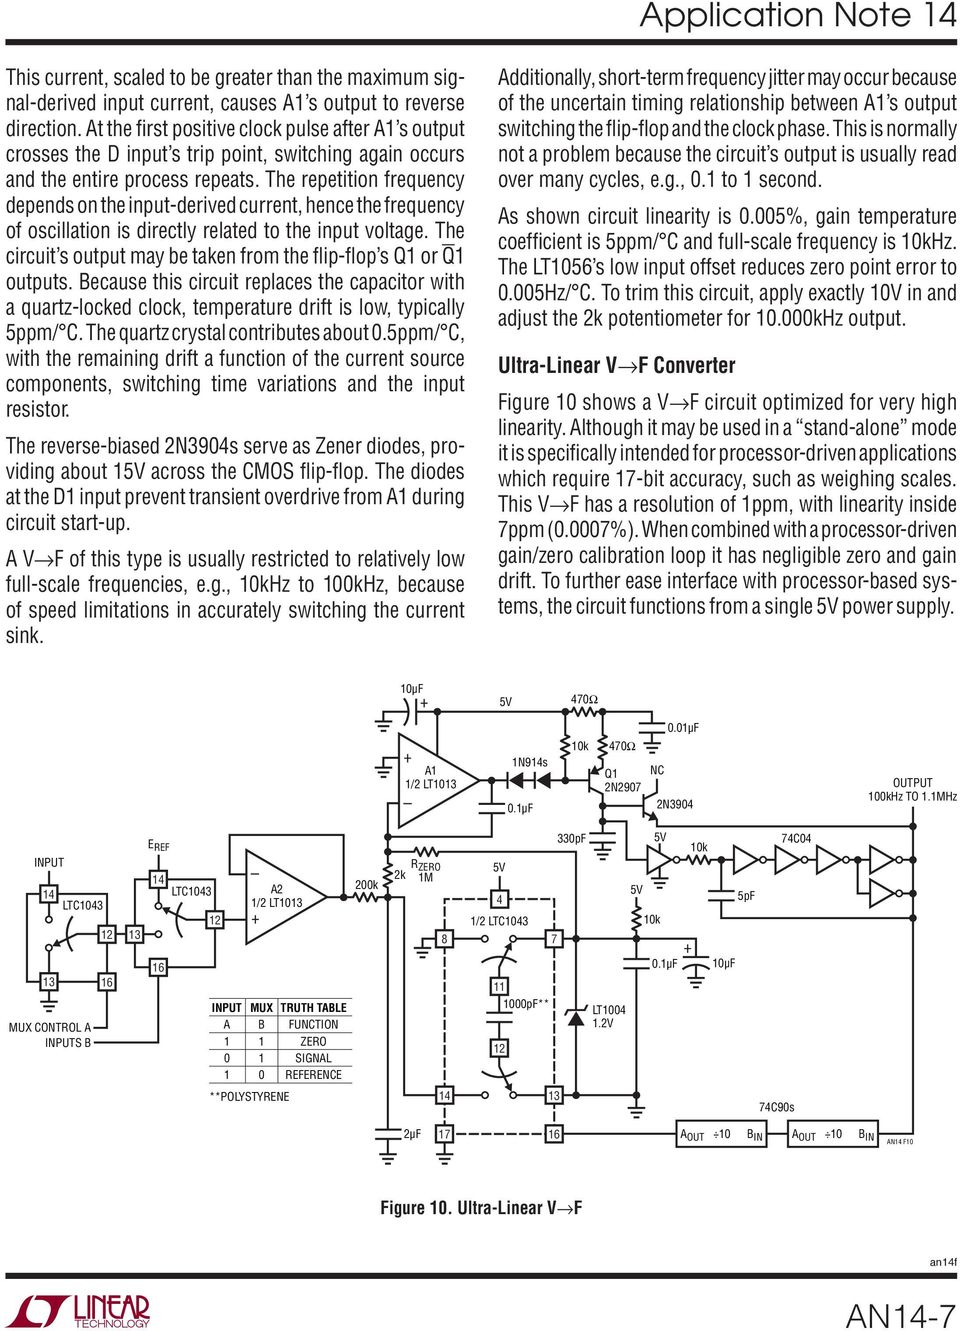 Designs For High Performance Voltage To Frequency Converters Pdf Quartz Crystal Sine Wave Oscillator Circuit Basiccircuit The Repetition Depends On Input Derived Current Hence Of Oscillation 8